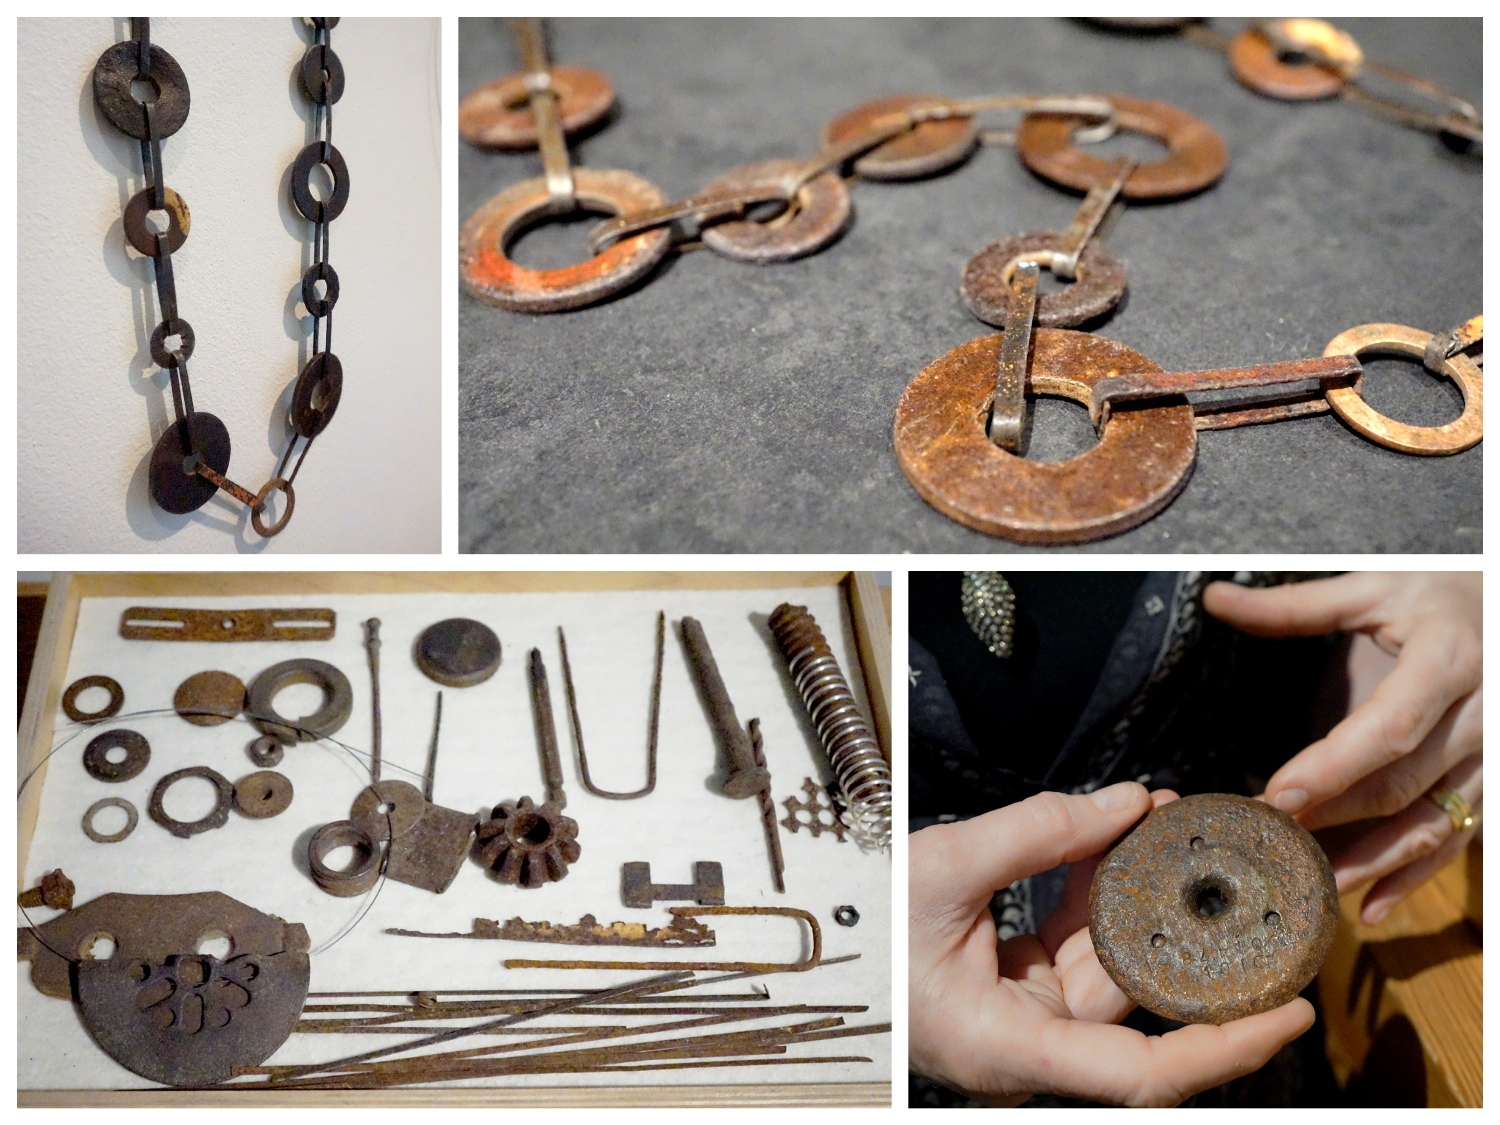 The discarded metal objects and a necklace made out of these materials.